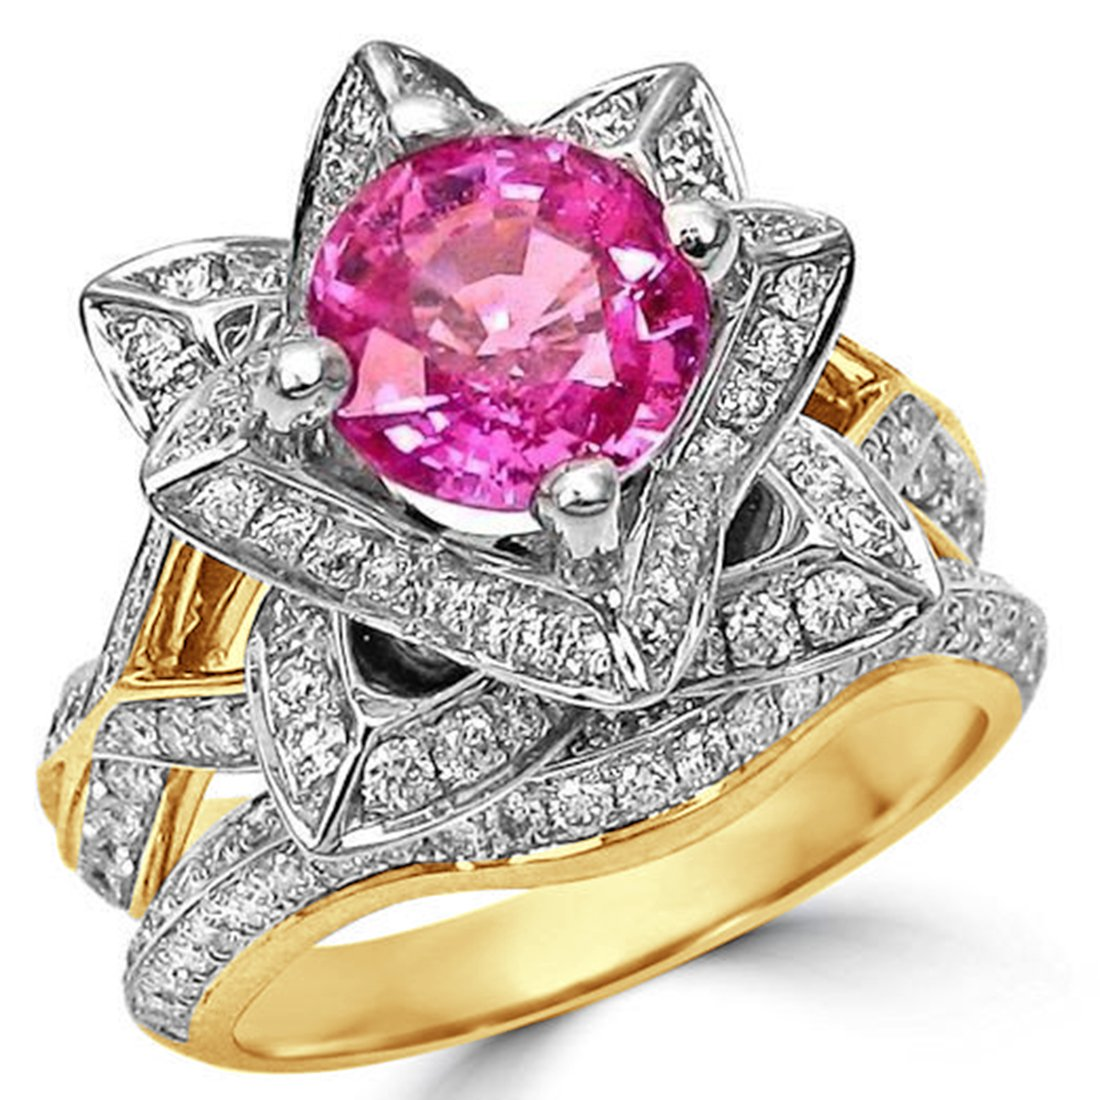 Smjewels 2.37 Ct Round Pink Sapphire Lotus Flower CZ Diamond Ring Bridal Set In Yellow Gold Fn